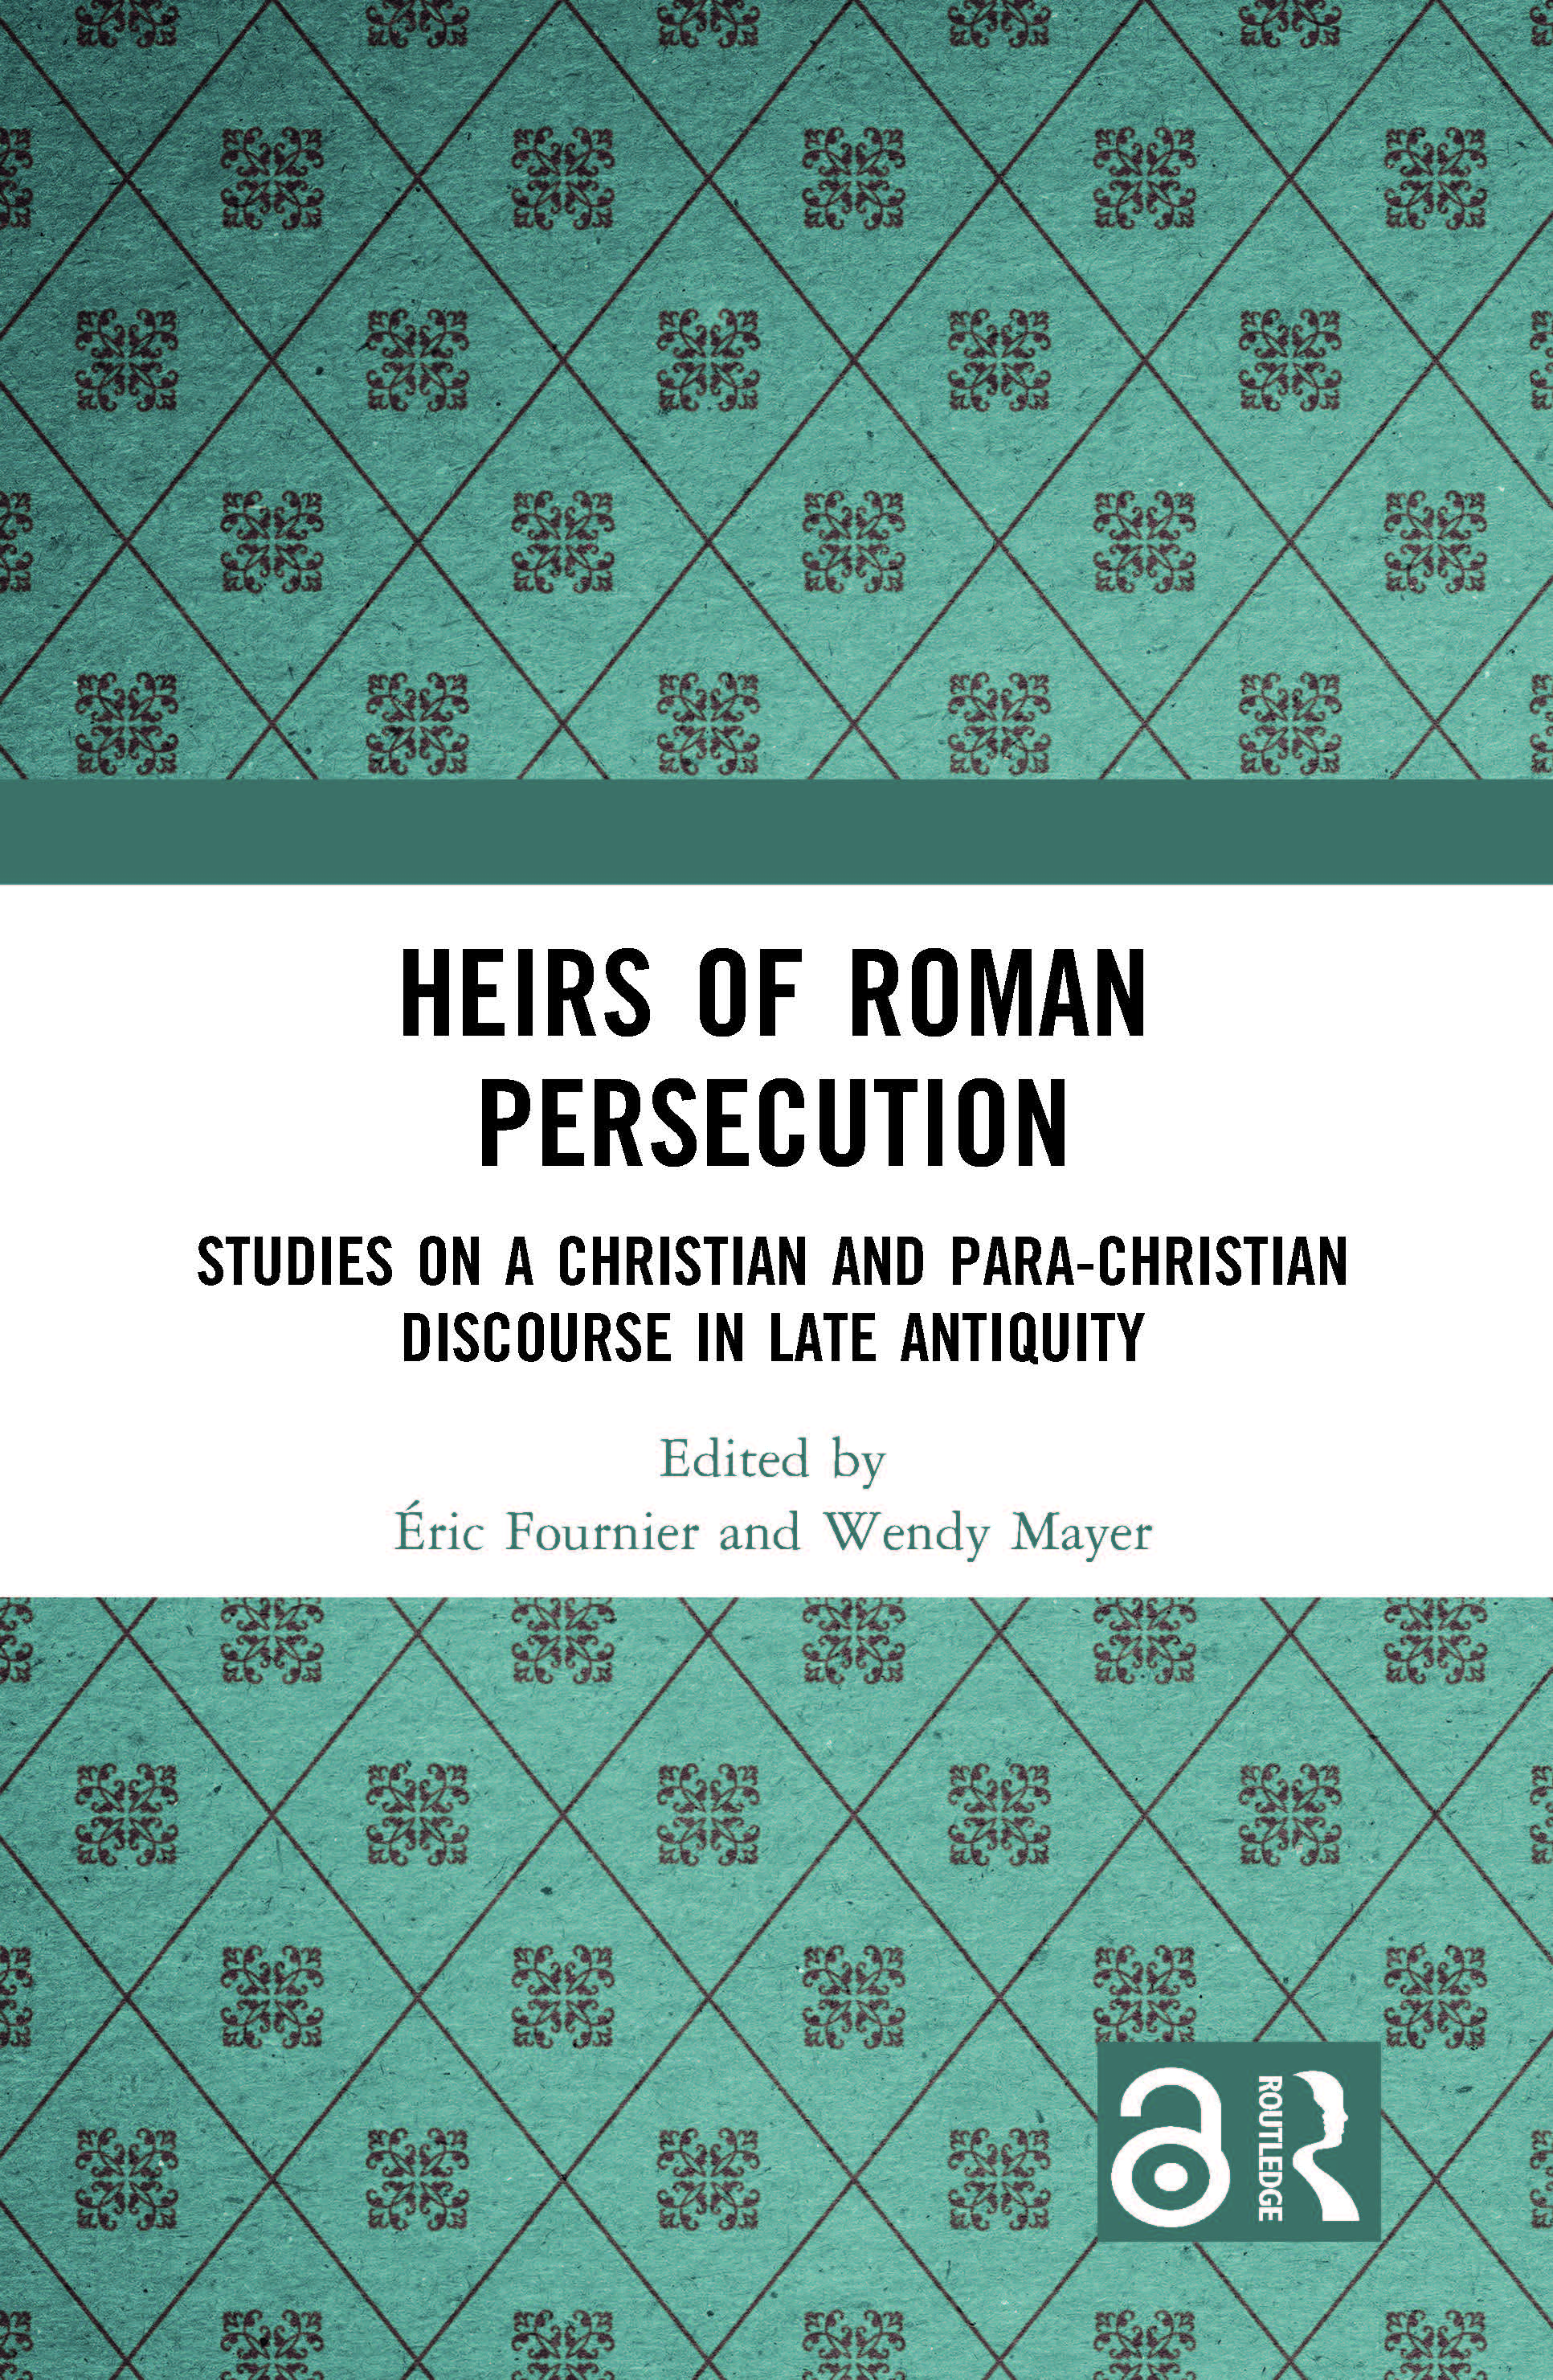 Heirs of Roman Persecution: Studies on a Christian and Para-Christian Discourse in Late Antiquity book cover